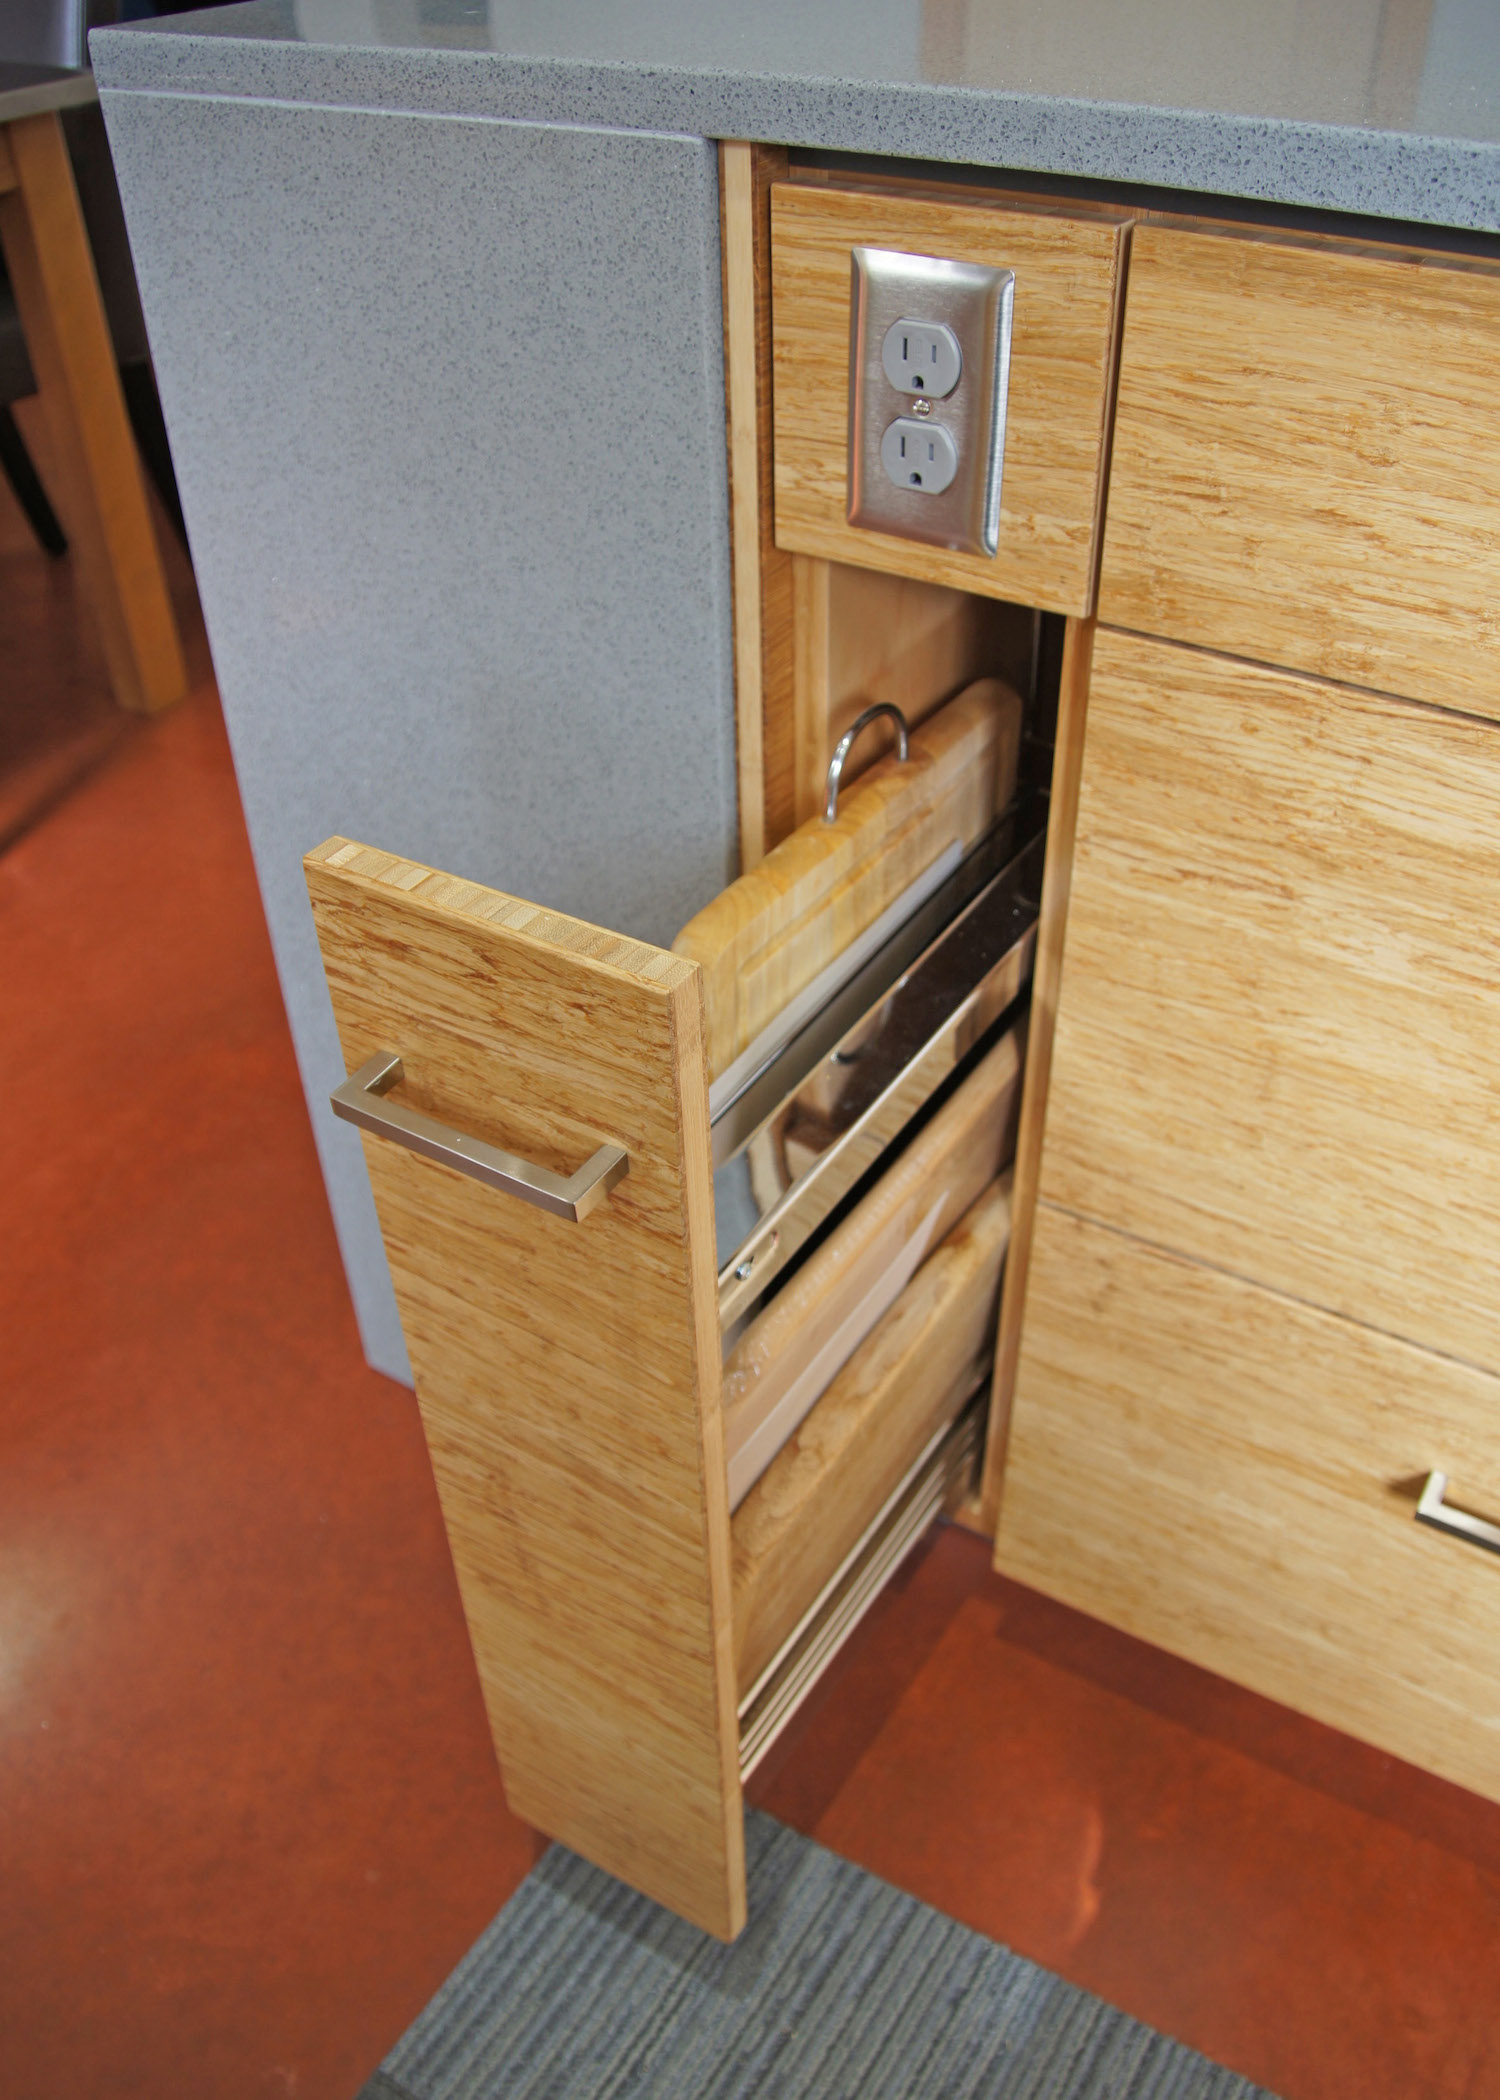 09 chopping board pull out.jpg